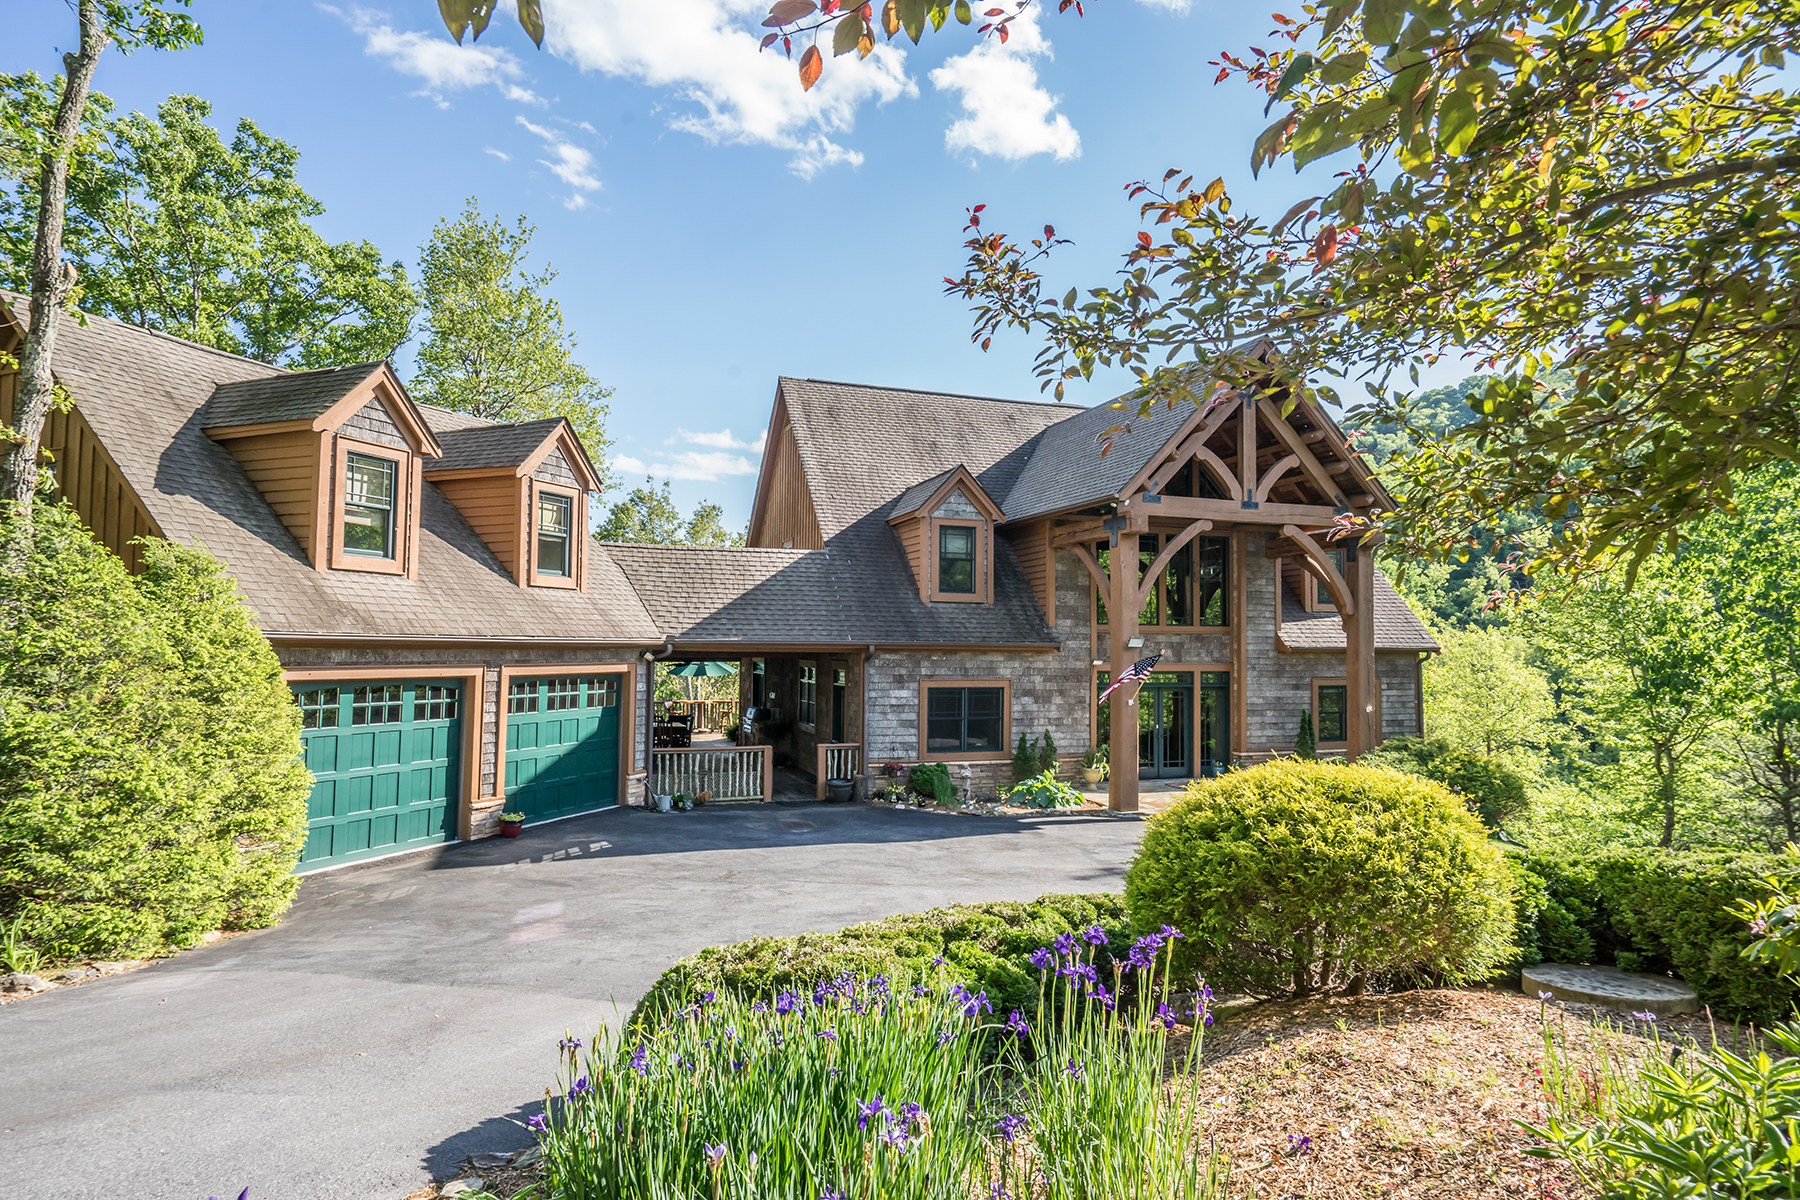 Single Family Home for Active at STONECLIFF PRESERVE - BOONE 236 Caspers Way Boone, North Carolina 28607 United States